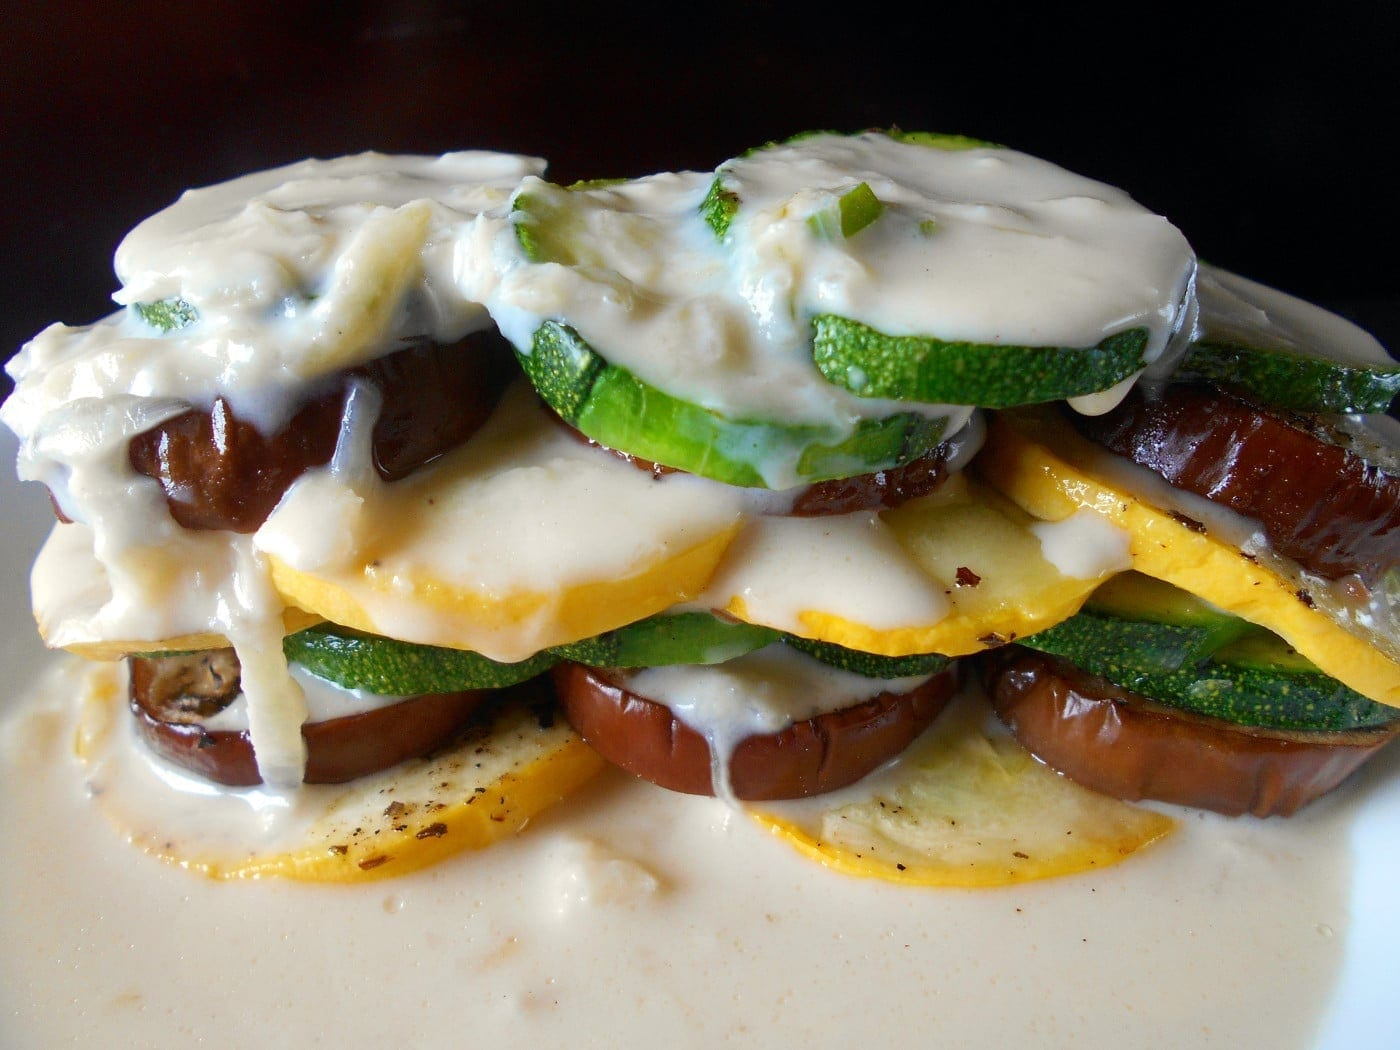 Closeup view of a stack of roasted vegetables doused with soubise sauce - Ratatouille Stack